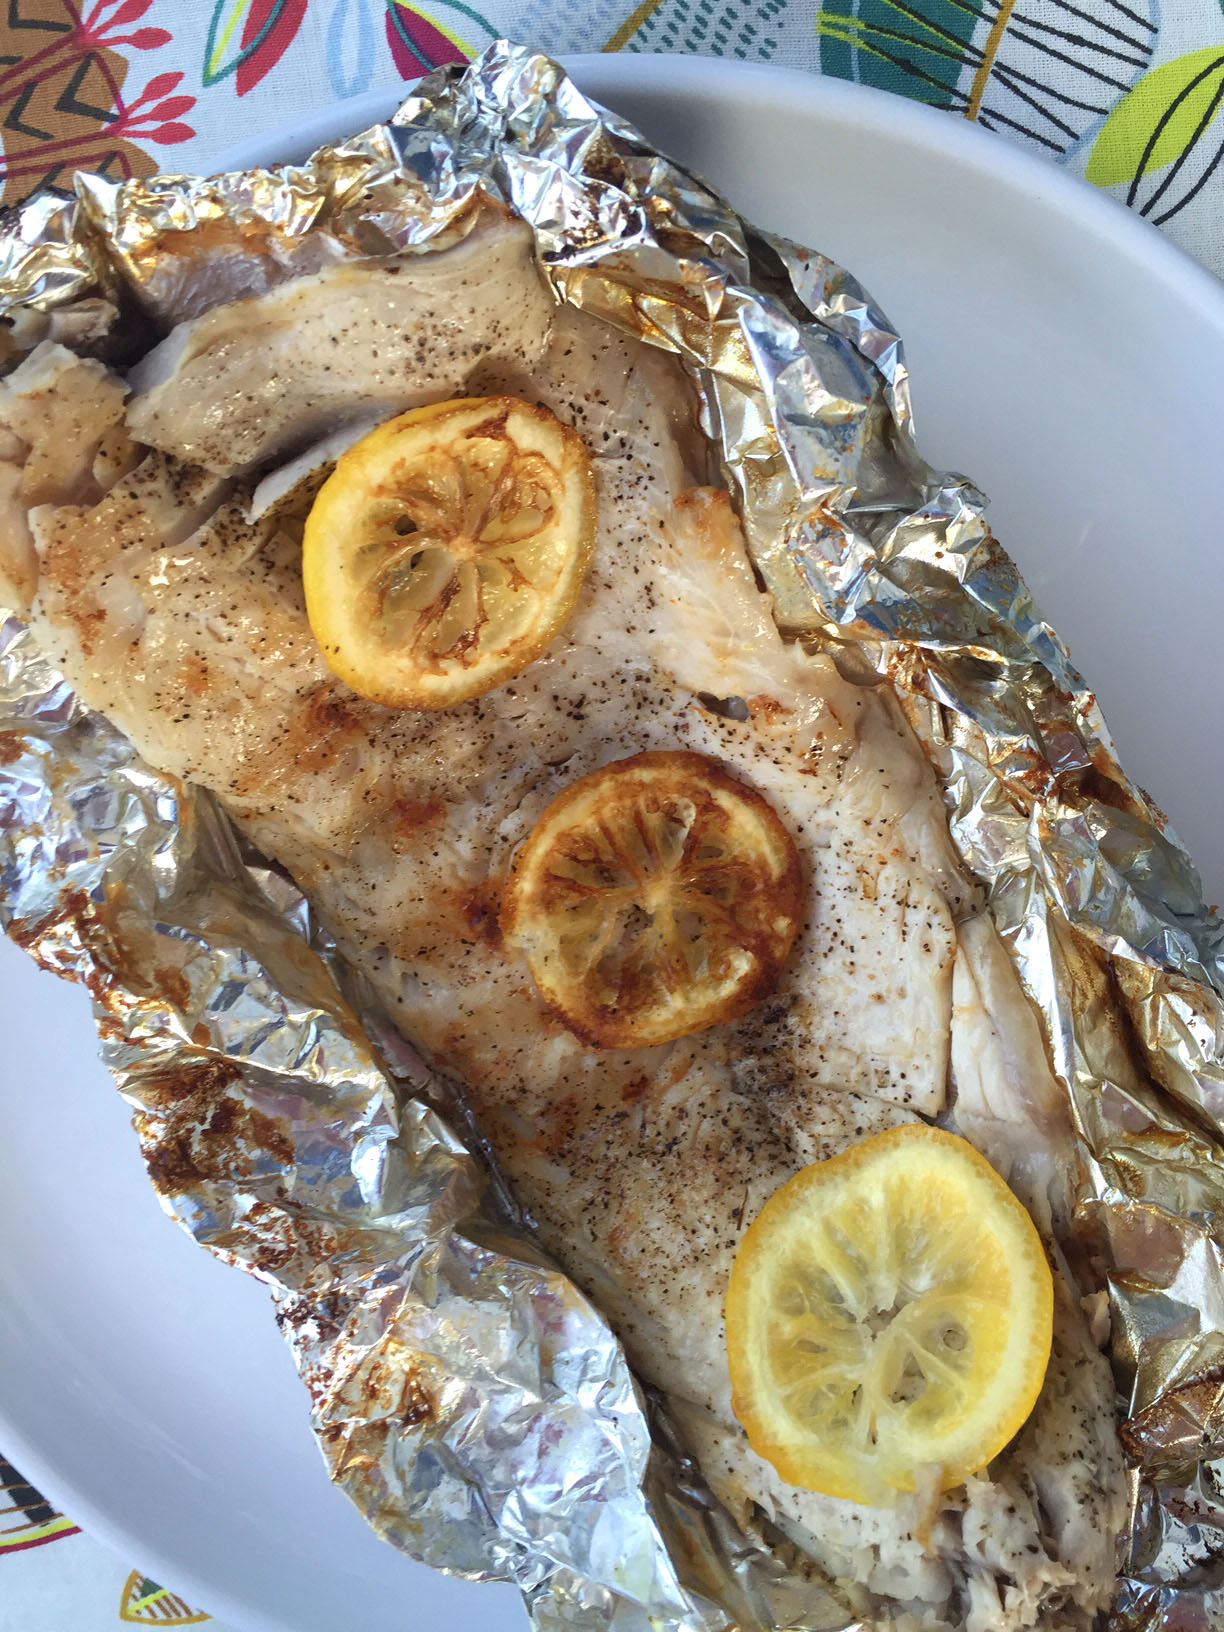 Fish In Foil Packets Recipe With Lemon Butter u2013 Grilled or Baked! u2013 Melanie Cooks & Fish In Foil Packets Recipe With Lemon Butter u2013 Grilled or Baked ...